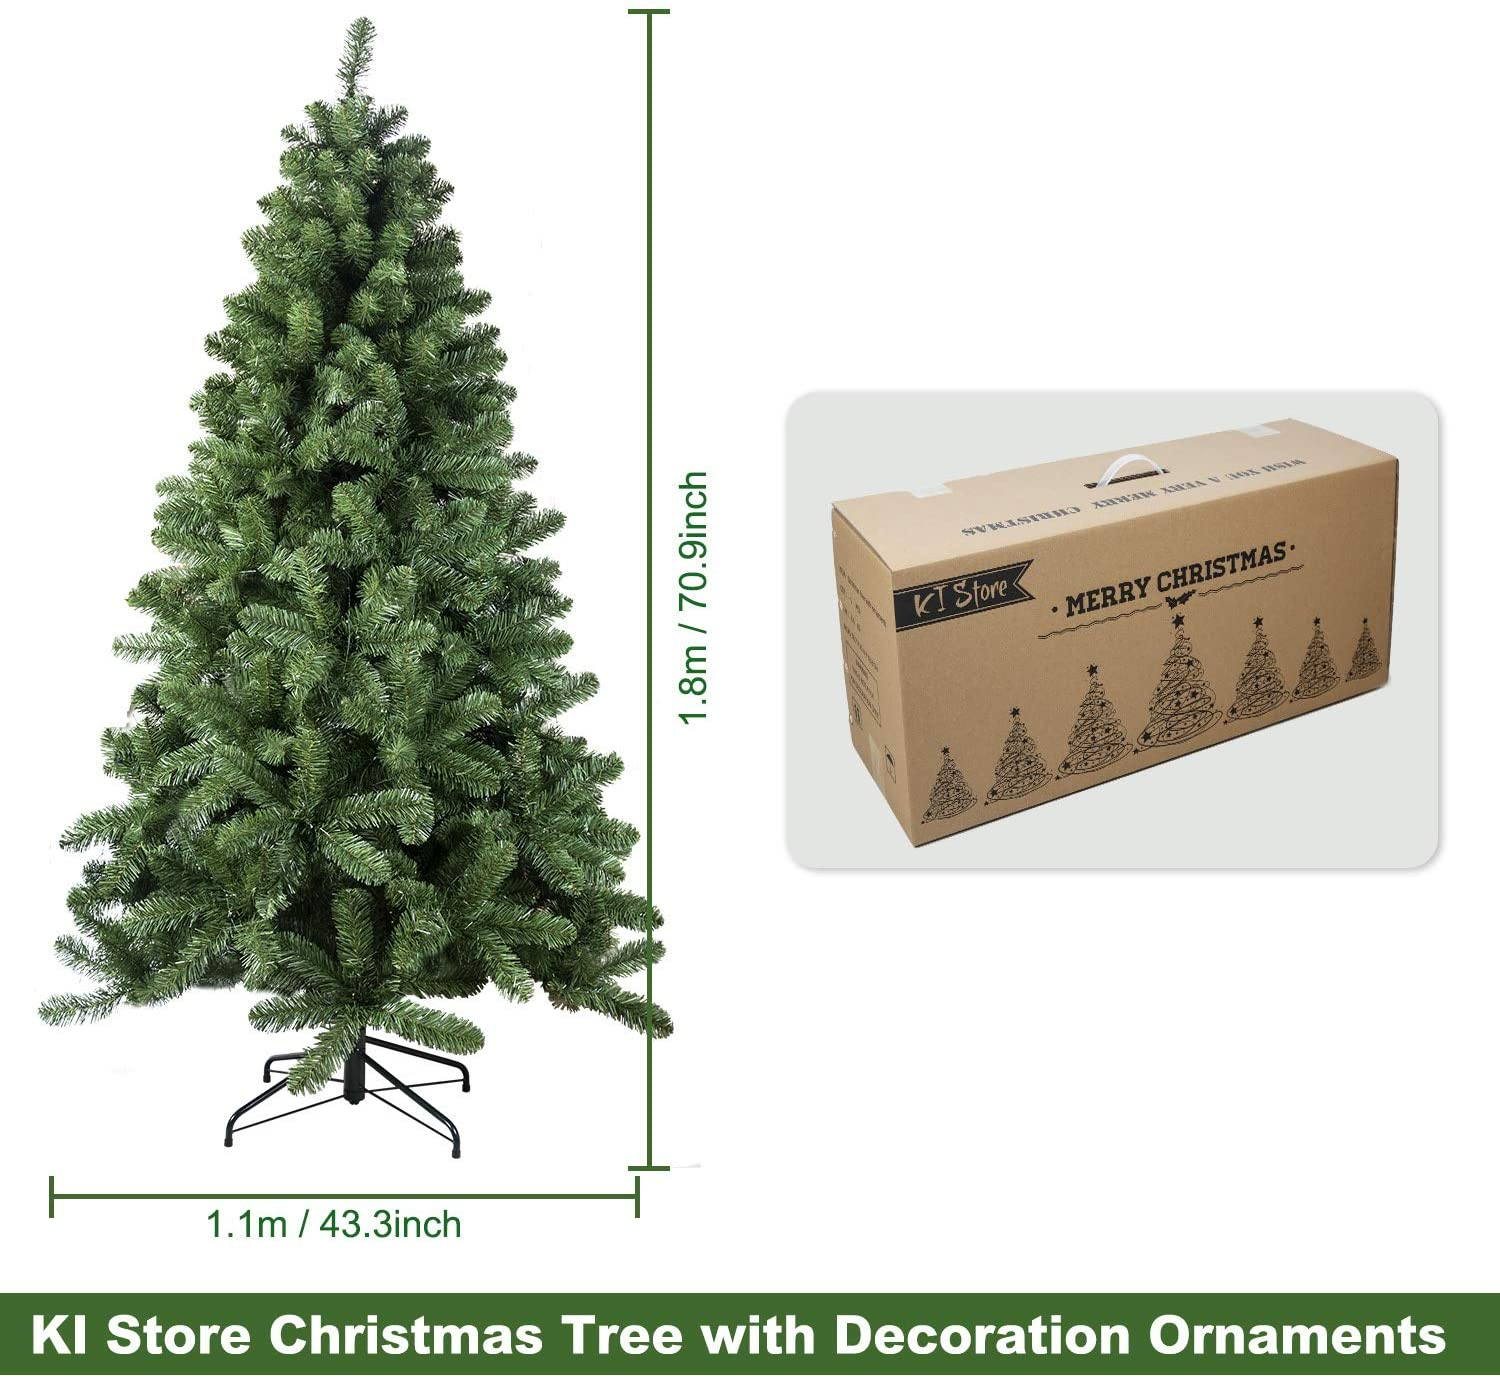 6ft Artificial Christmas Tree with Ornaments and Lights